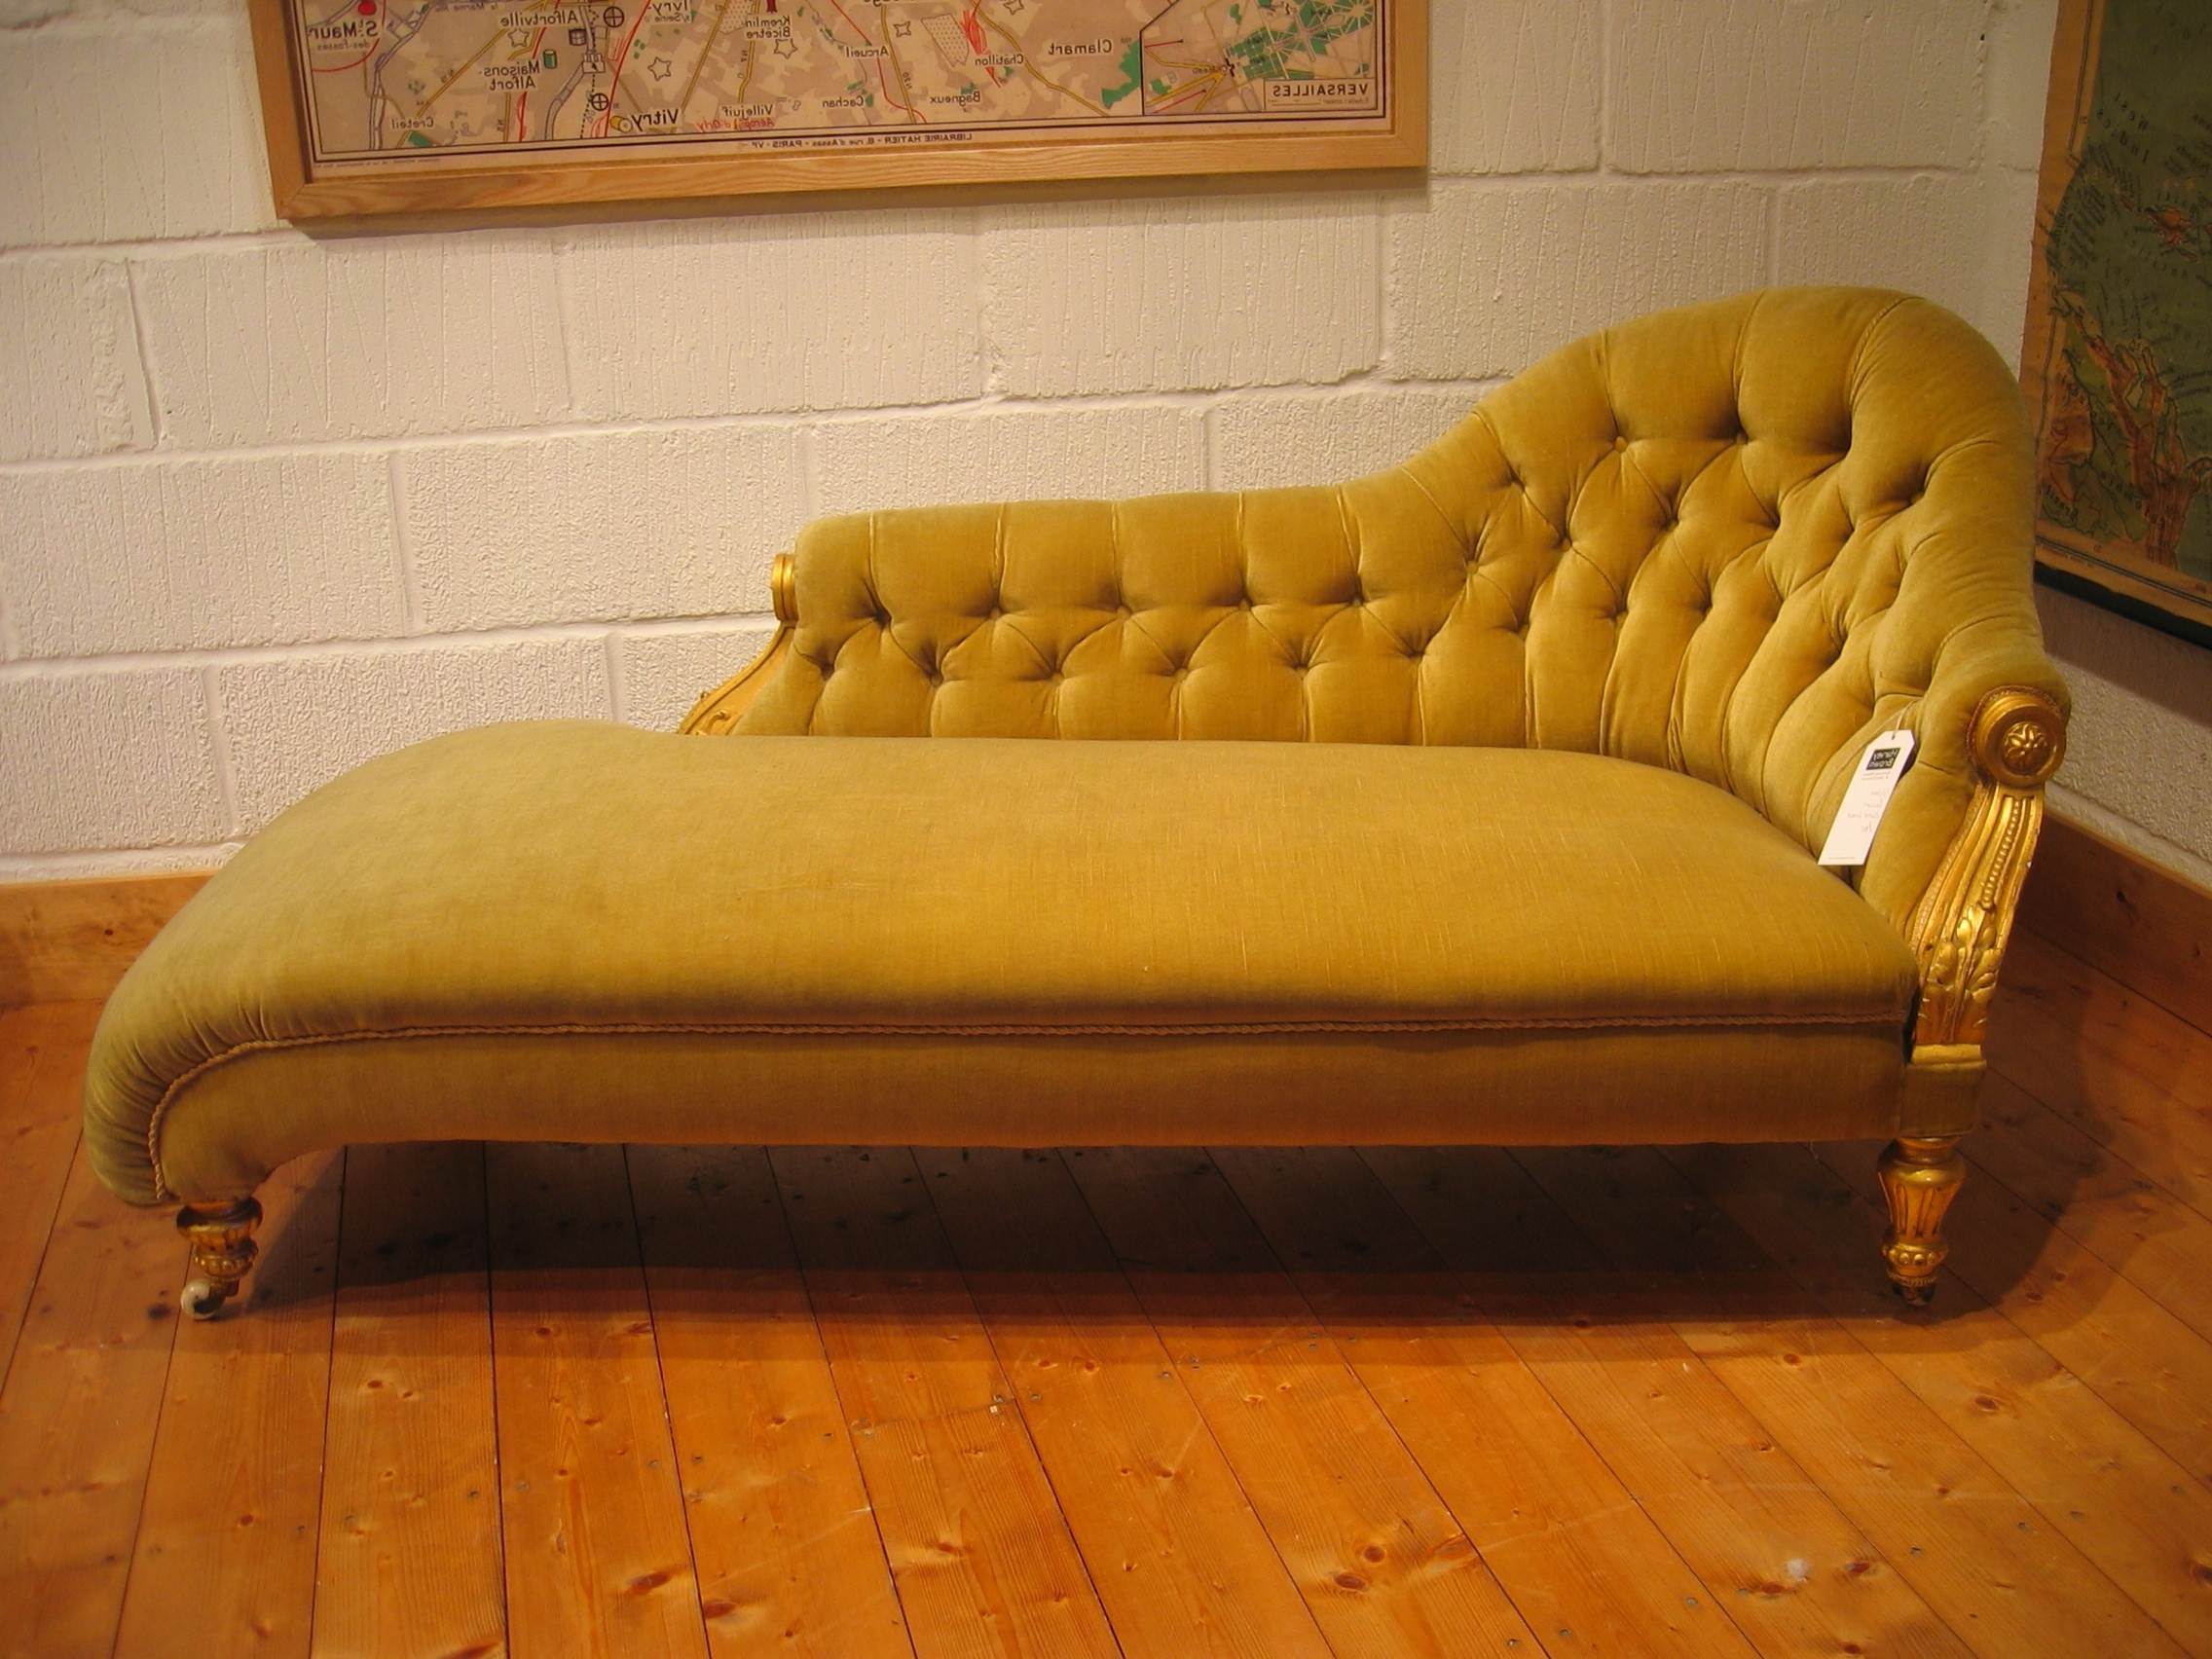 Famous Vintage Chaise Lounge Chairs Intended For Yellow Color Antique Victorian Chaise Lounge Sofa Bed With Wooden (View 4 of 15)